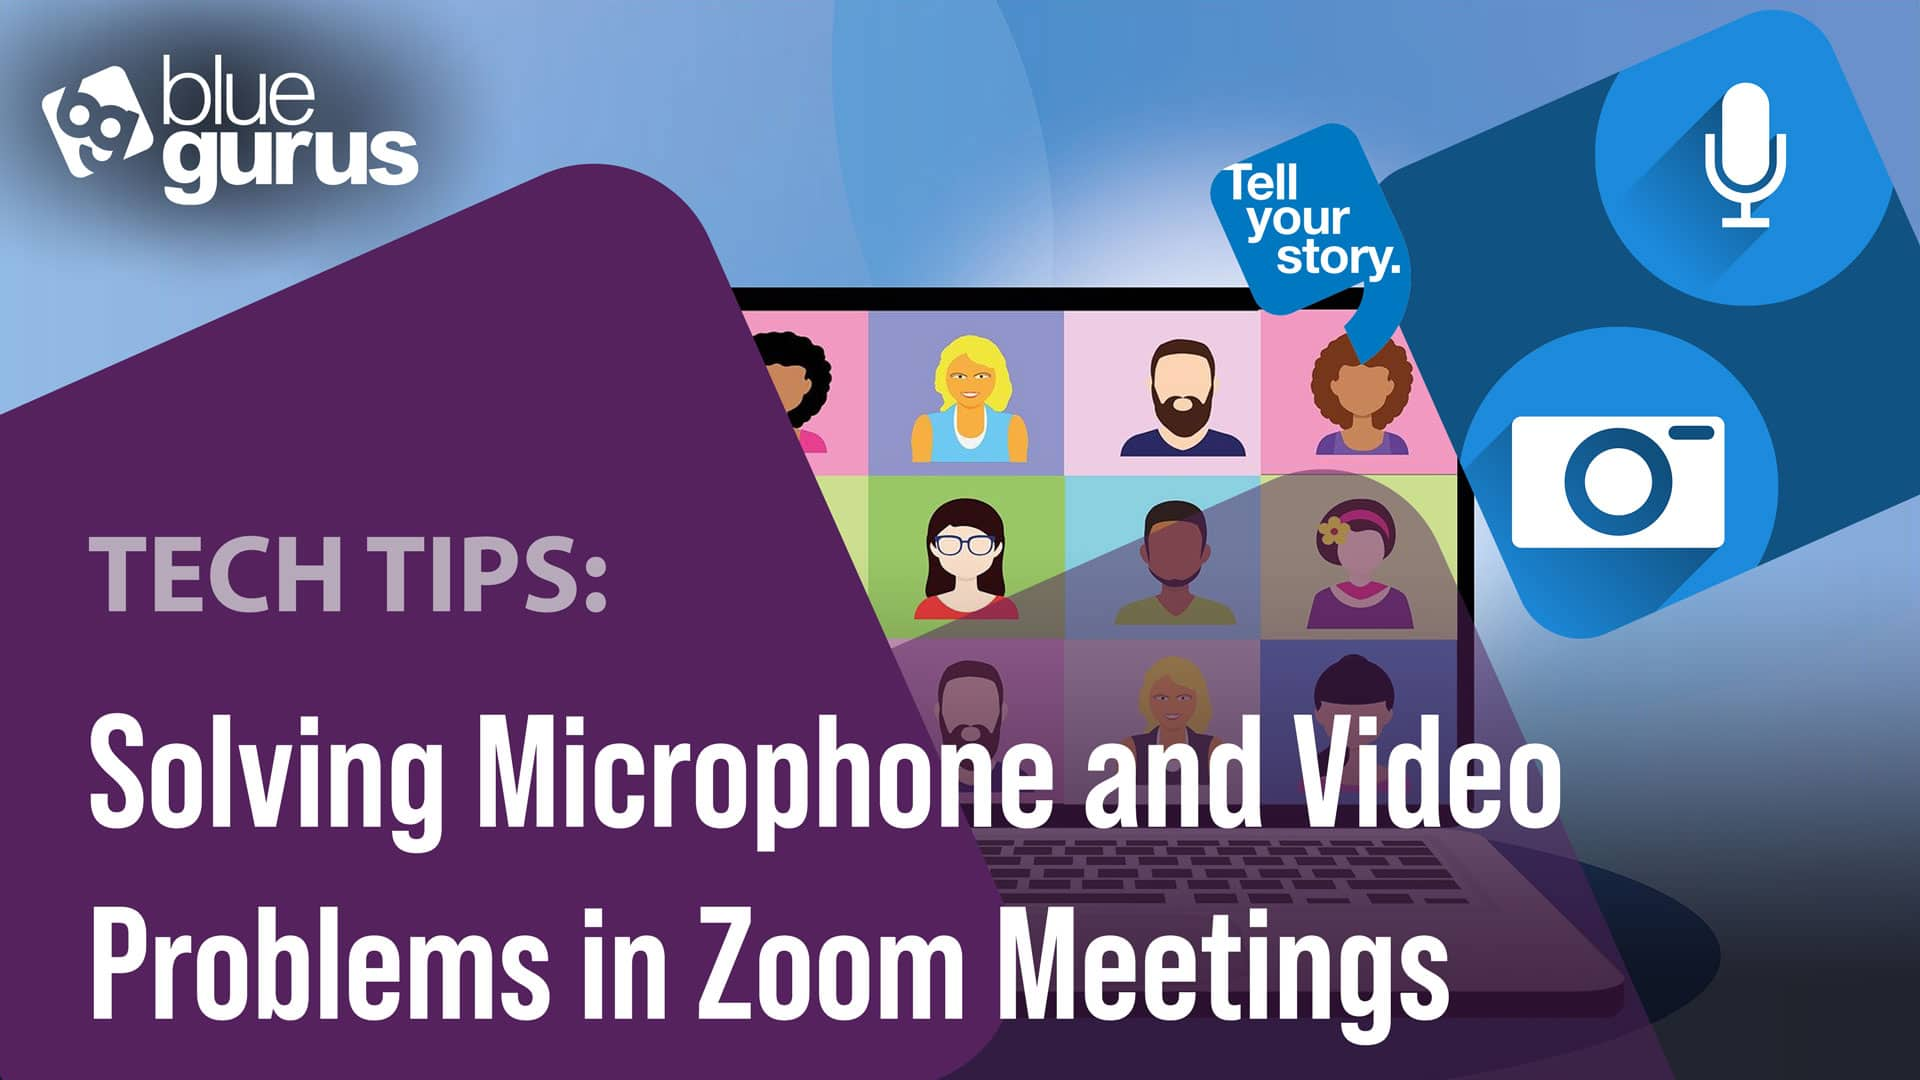 Solving Microphone and Video Problems in Zoom Meetings